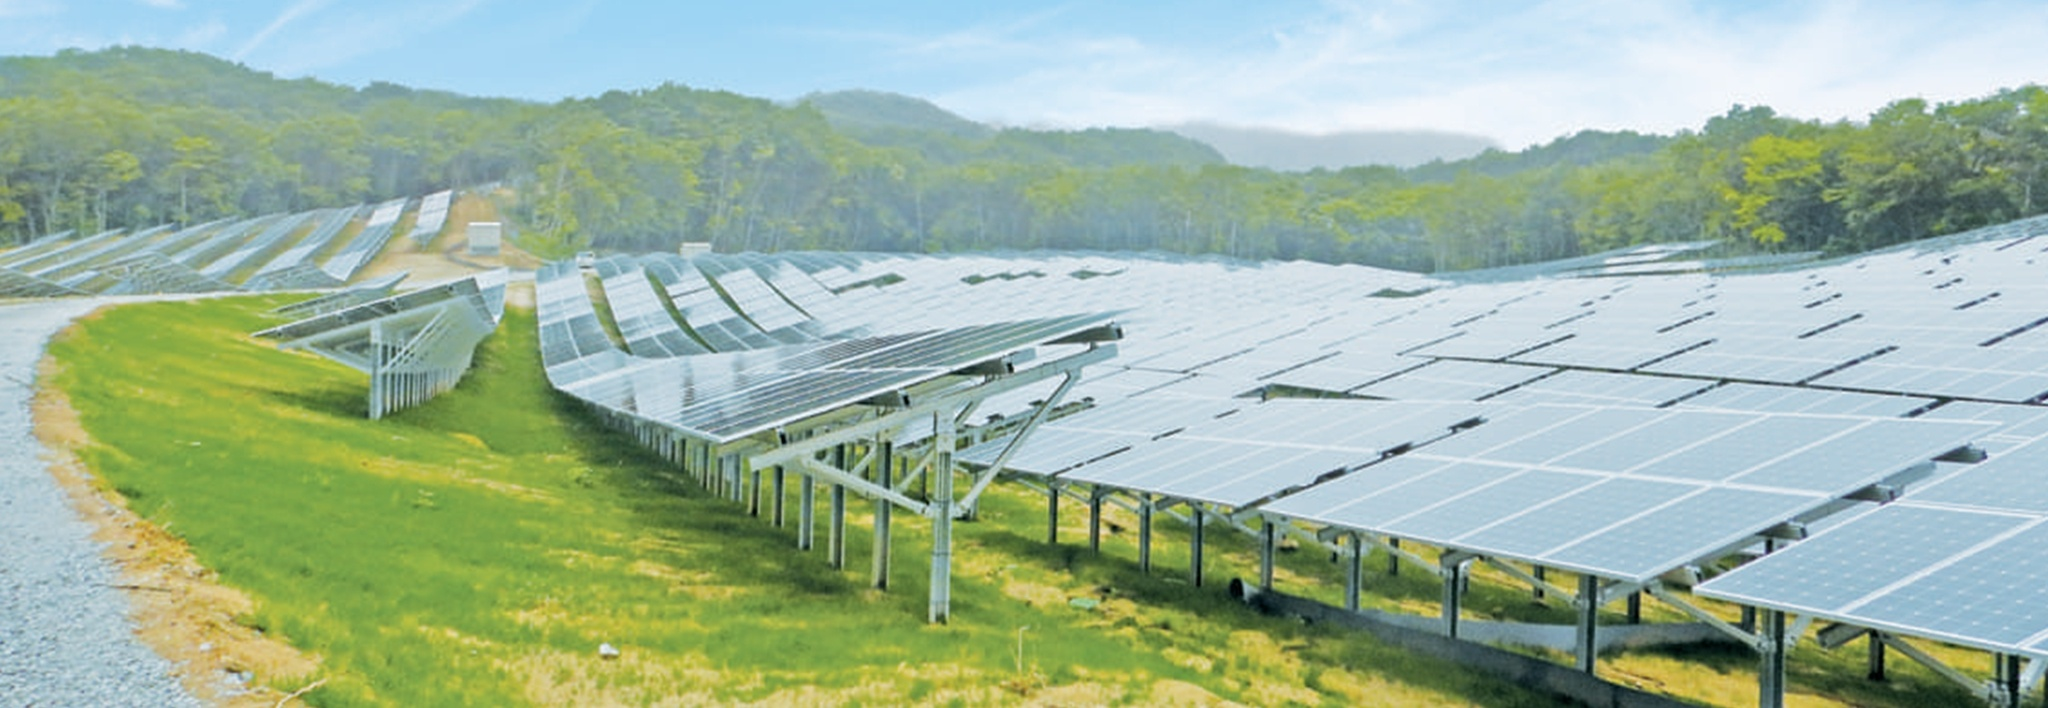 Clenergy Ground-mount PV-ezRack SolarTerrace II-F 40MW Solar Plant in Kawauchi – Japan 01